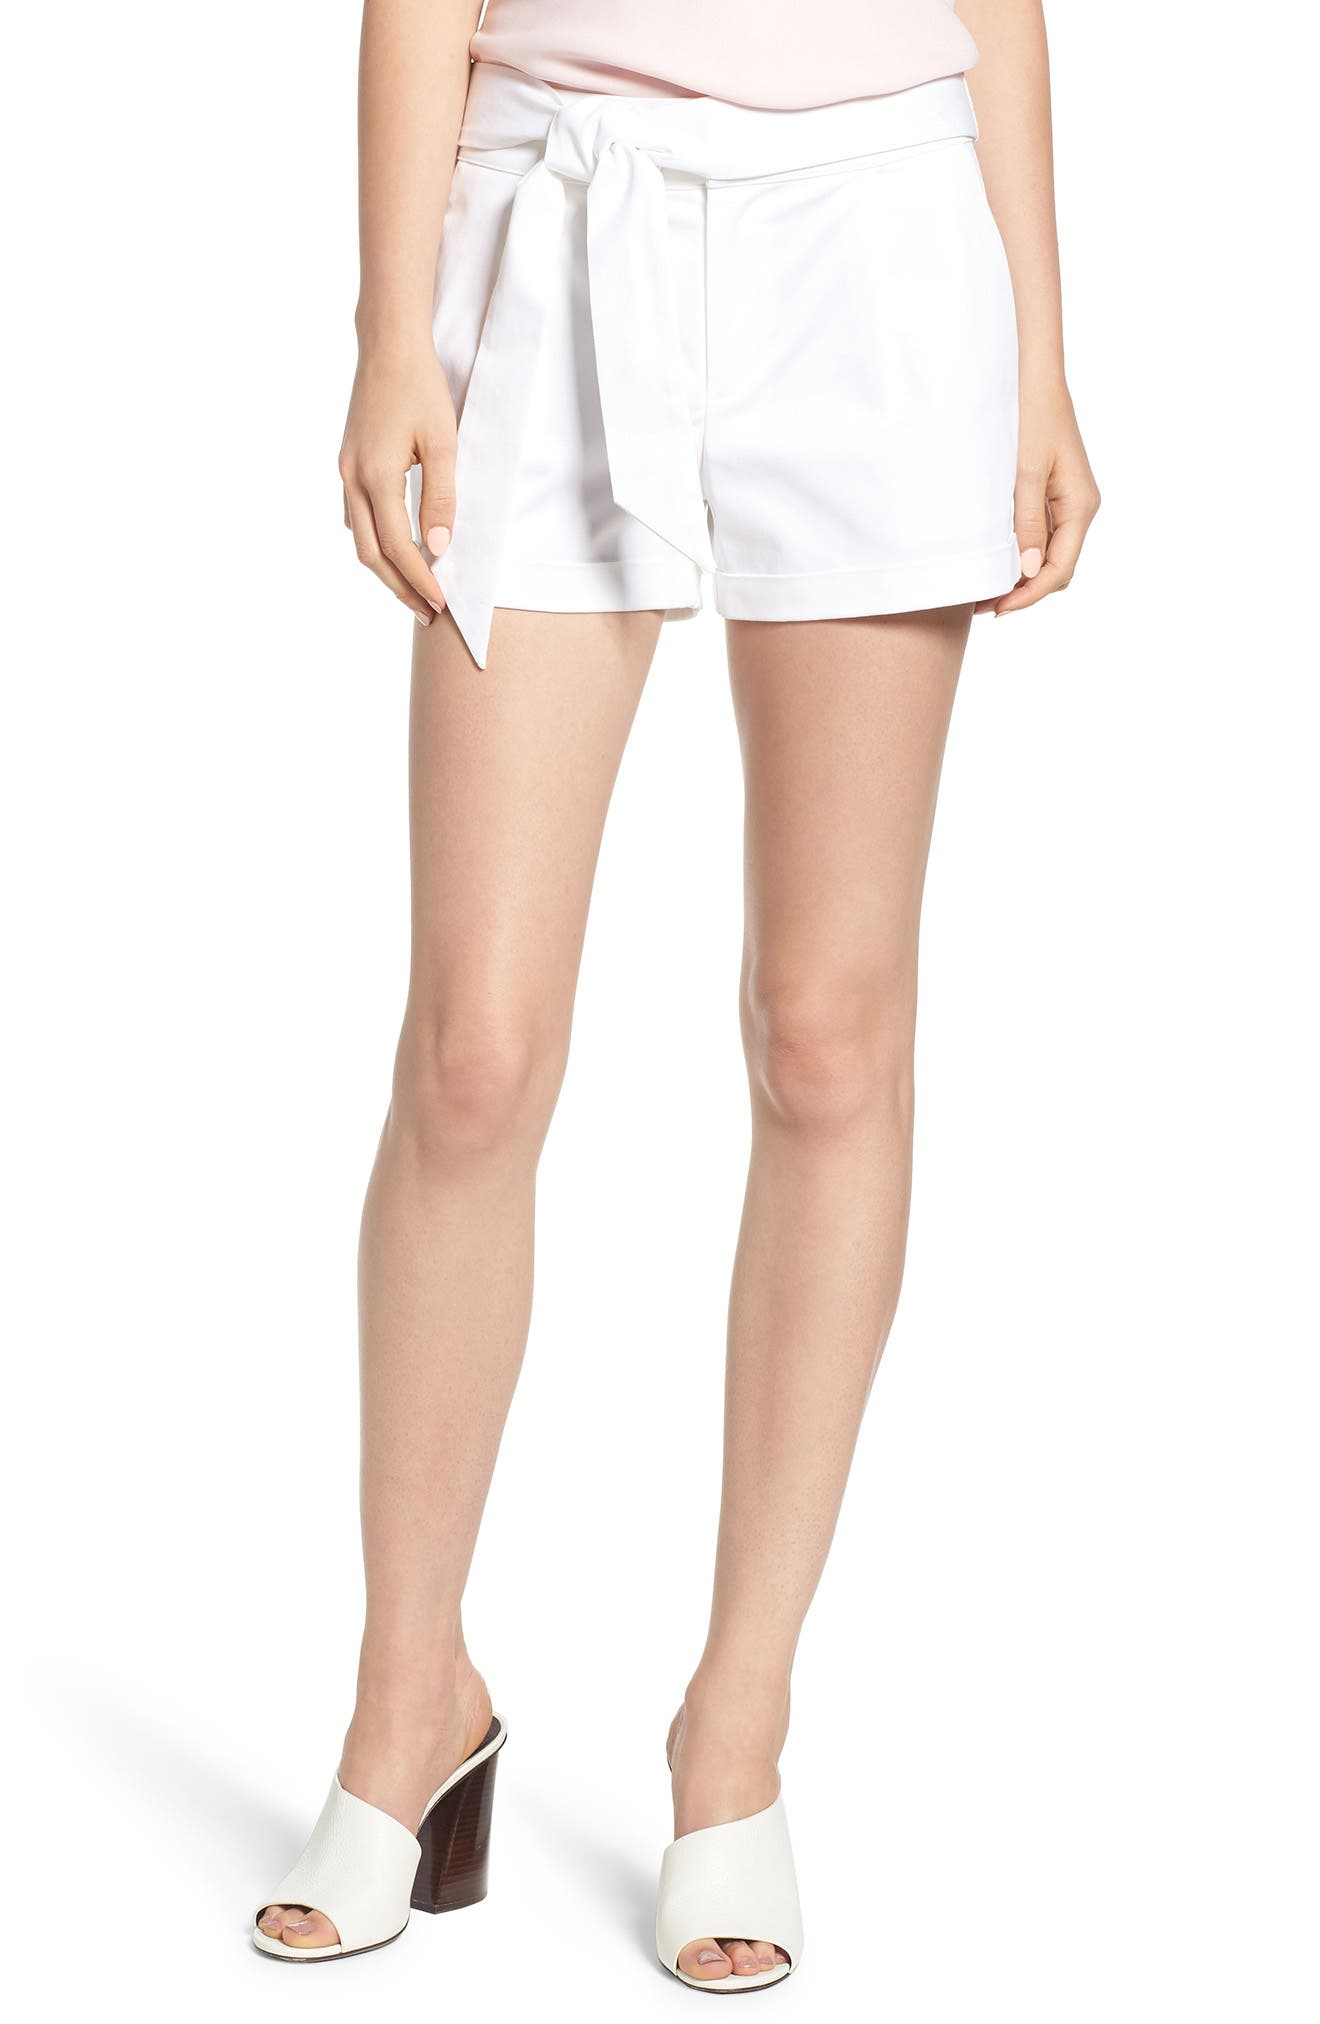 Yelinda Shorts,                             Main thumbnail 1, color,                             White